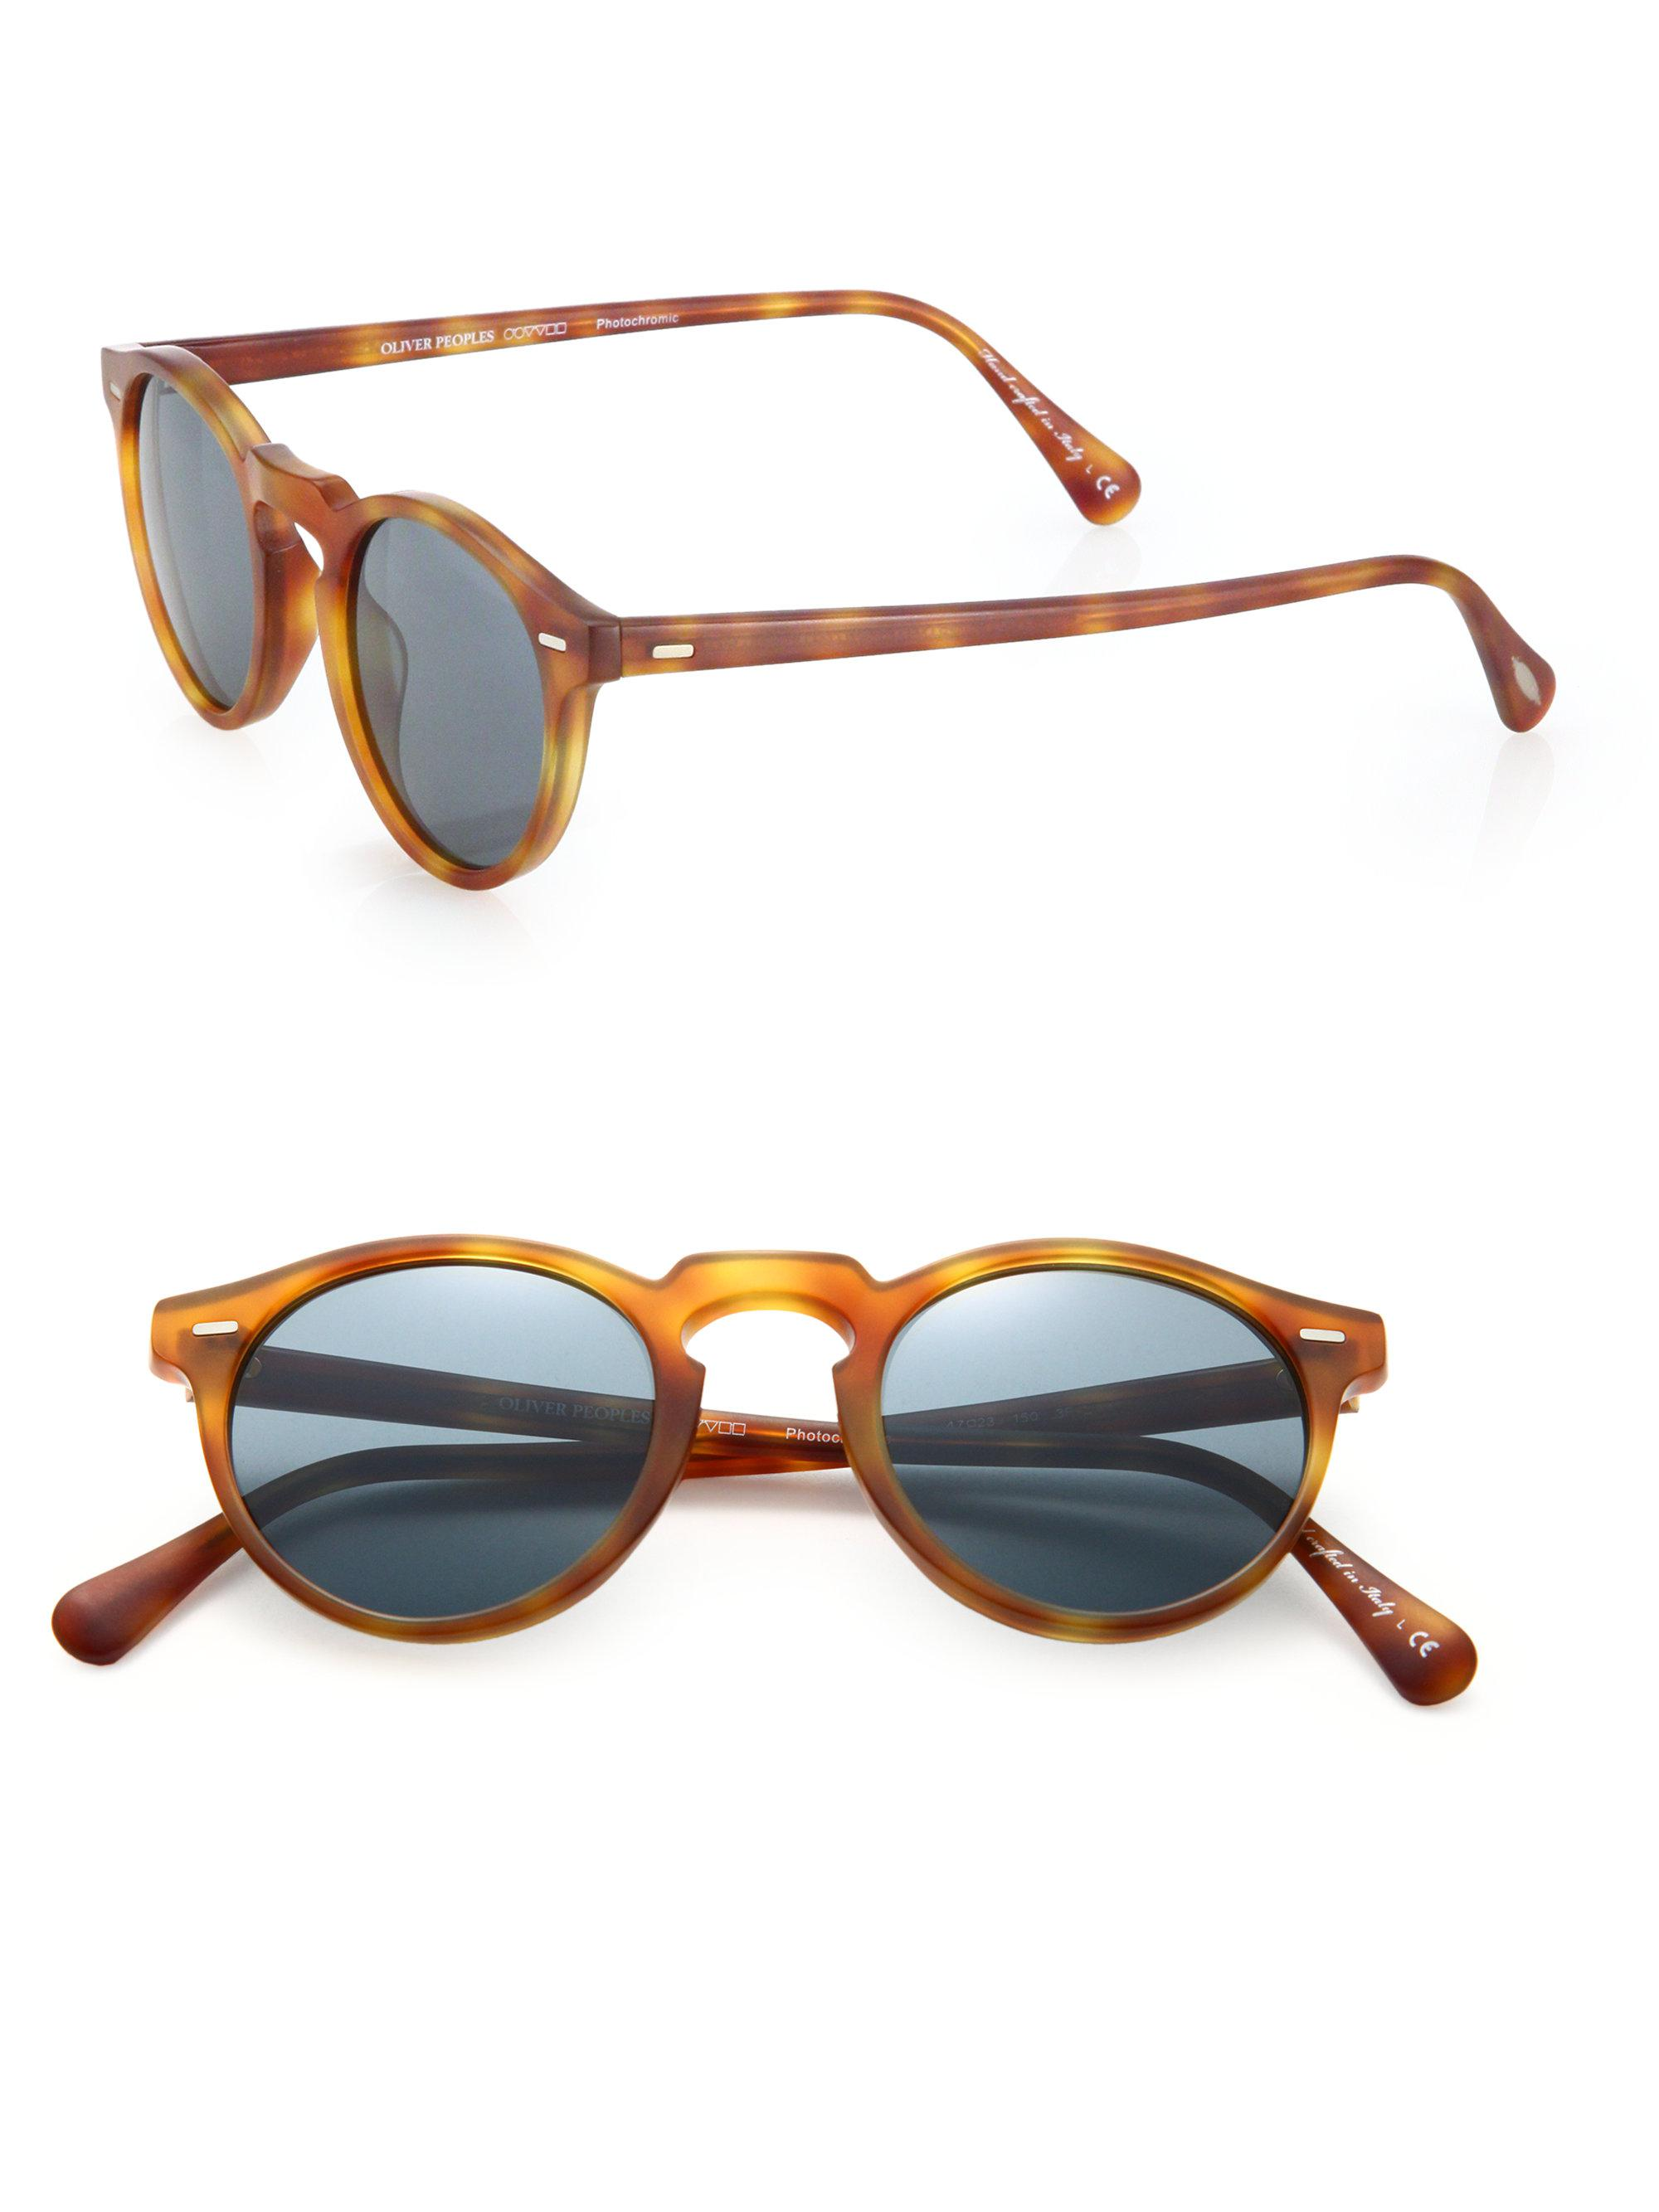 965ee63cf8 Oliver Peoples Gregory Peck 47mm Round Sunglasses in Brown for Men ...